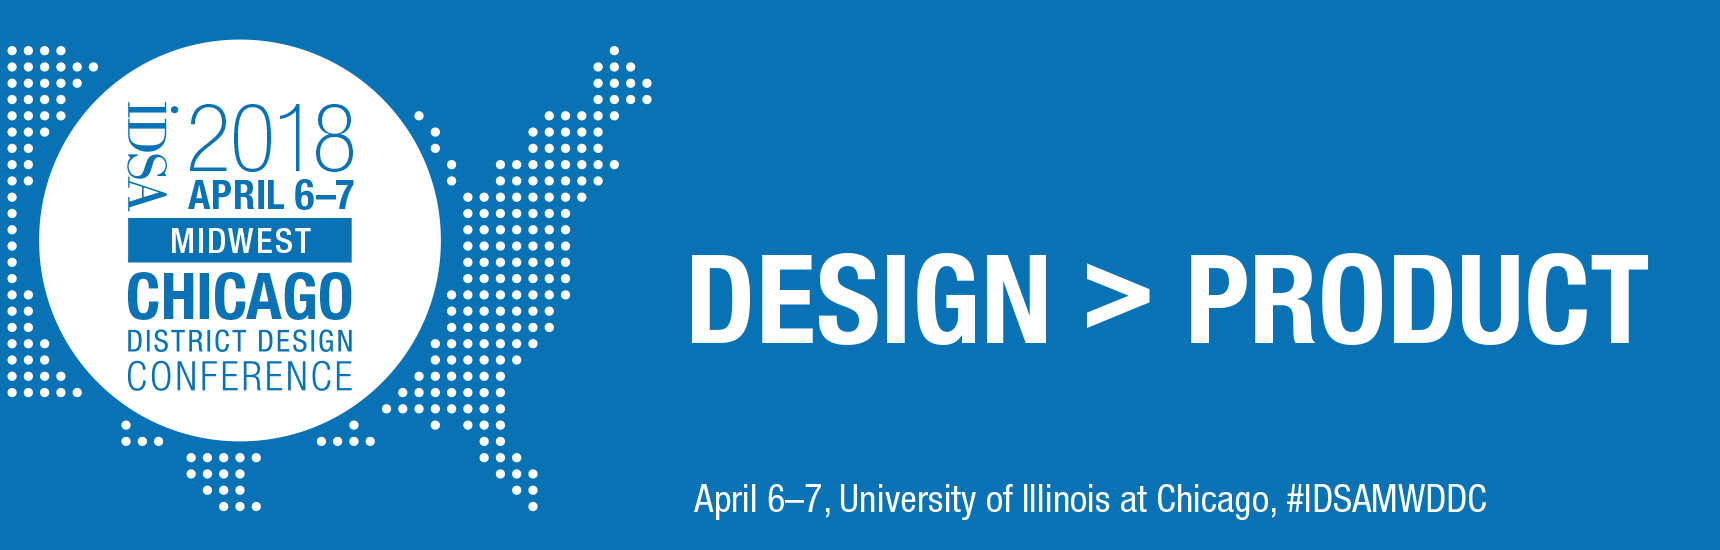 Midwest District Design Conference 2018   Schedule   Industrial